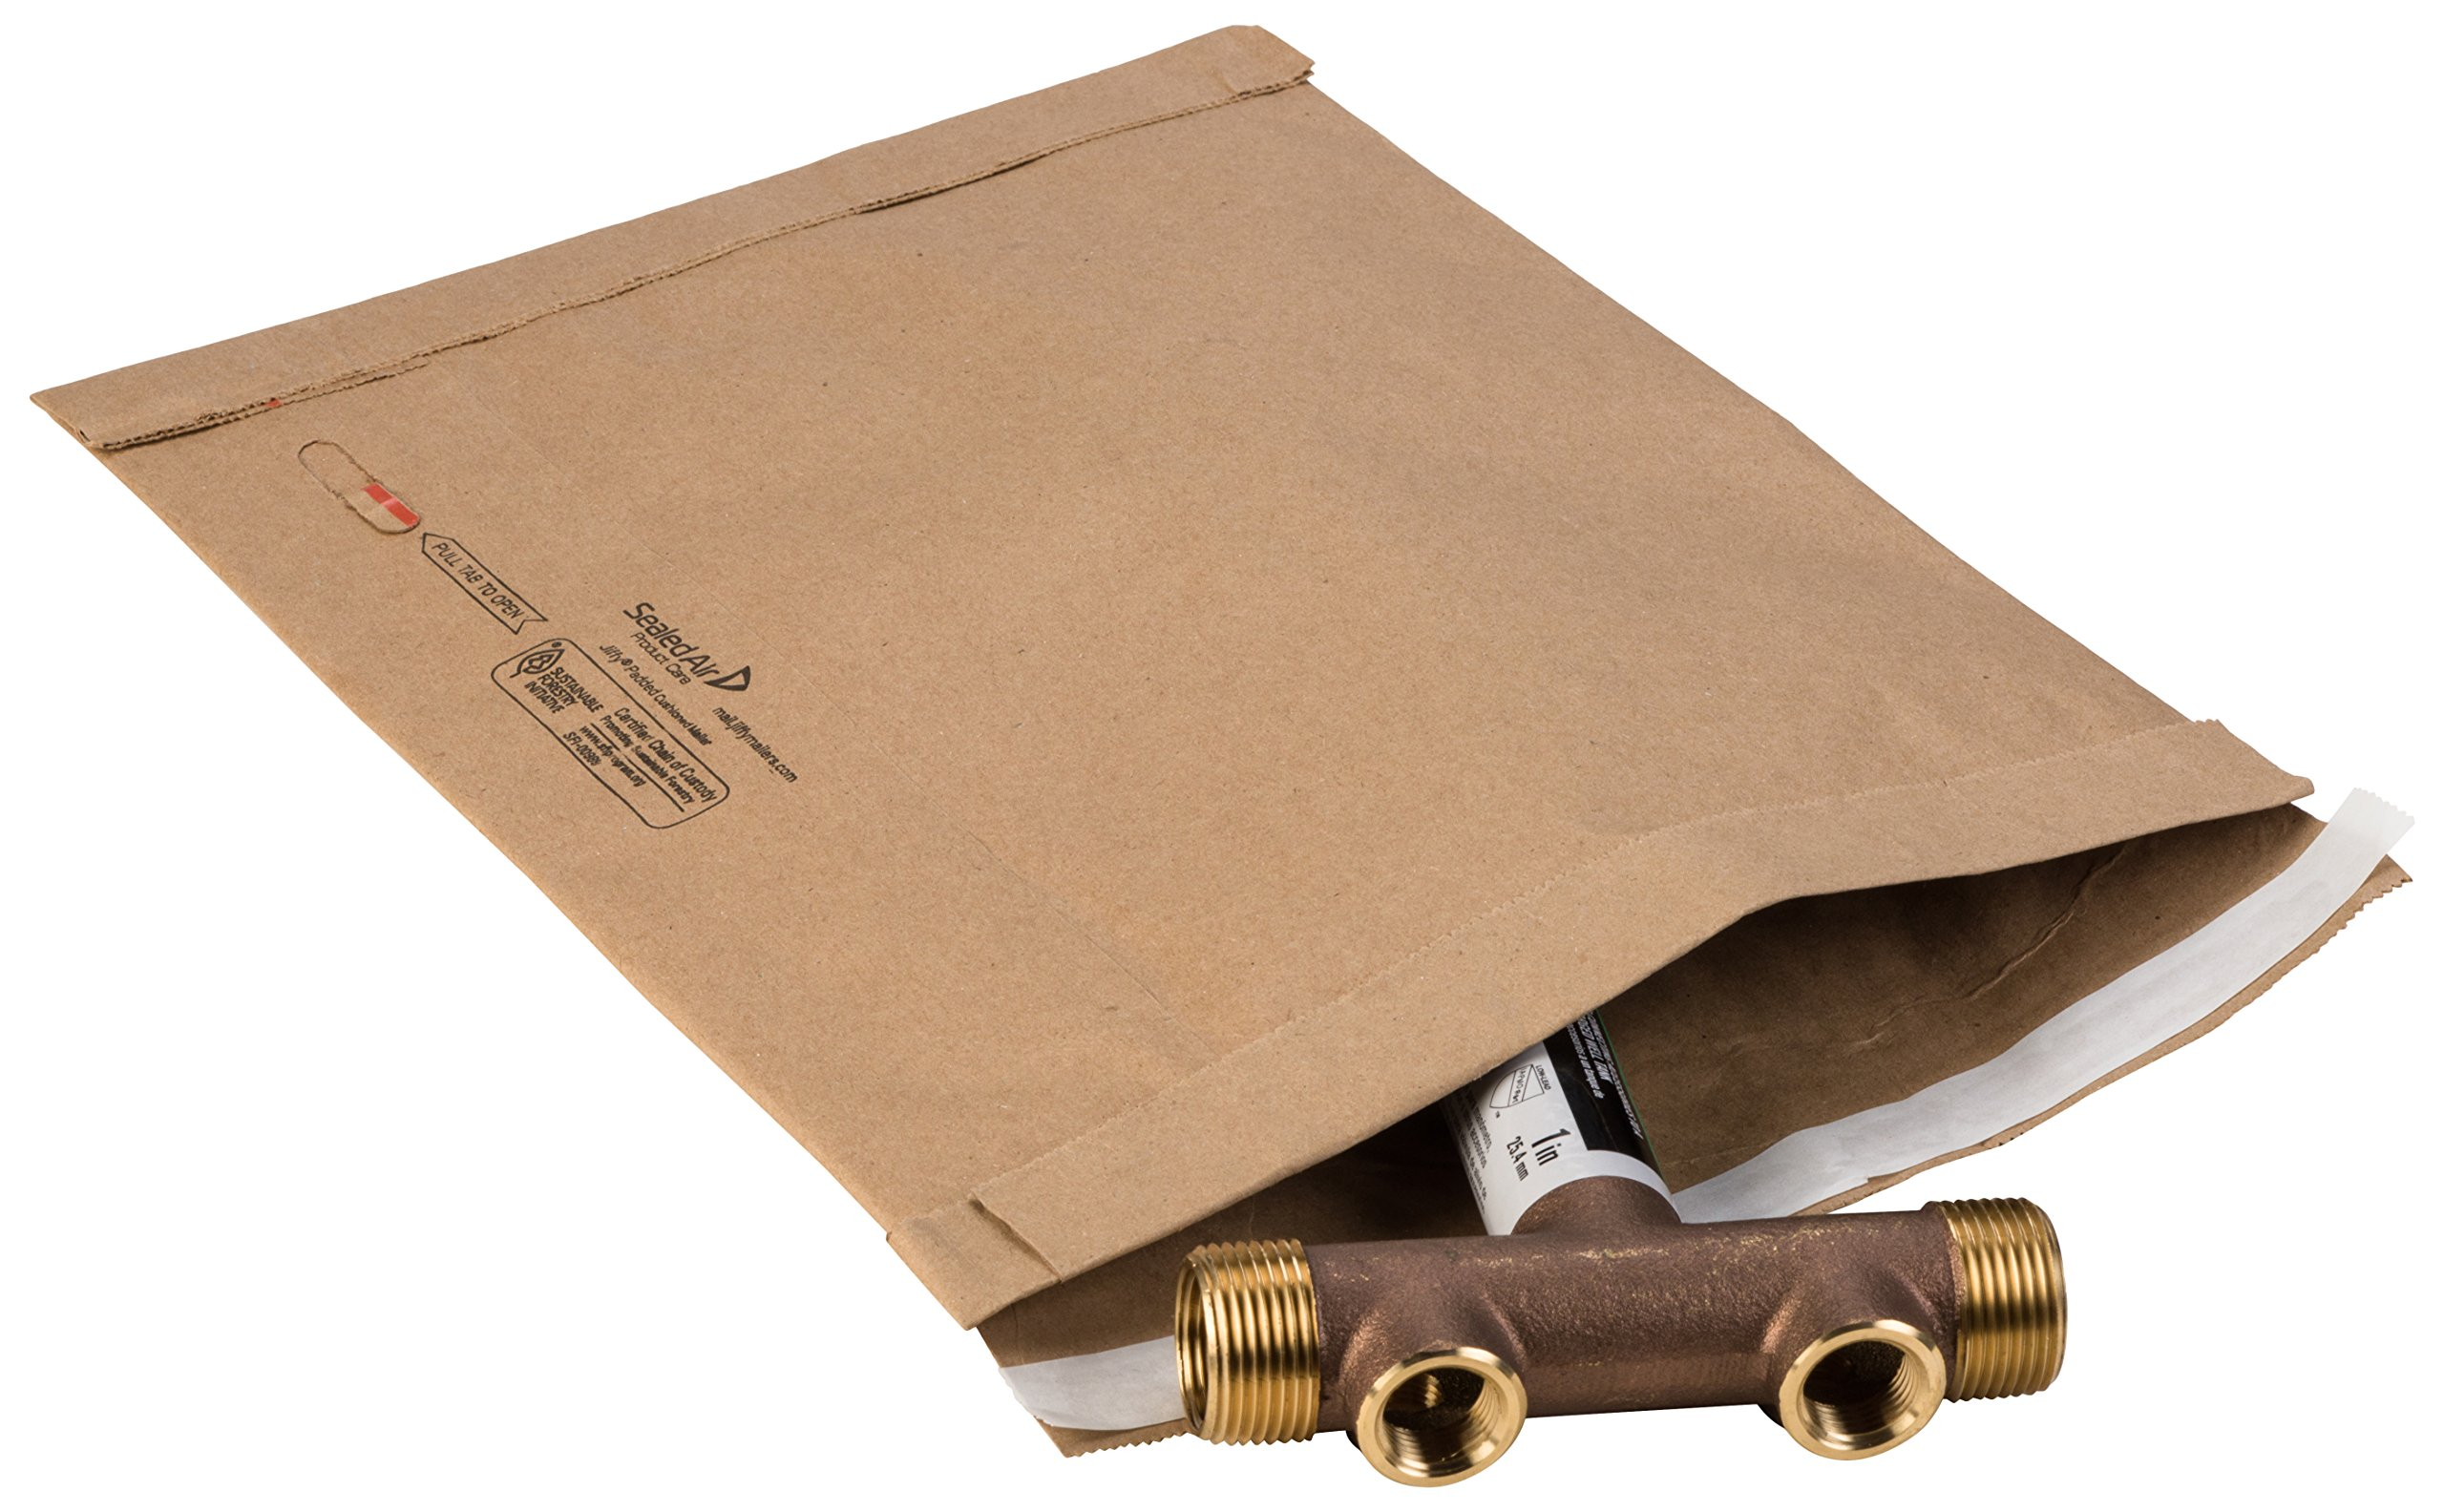 Jiffy Padded Mailer 67068 Self Seal, 2, 8-1/2'' x 12'', Natural Kraft (Pack of 100) by Jiffy Steamer (Image #1)